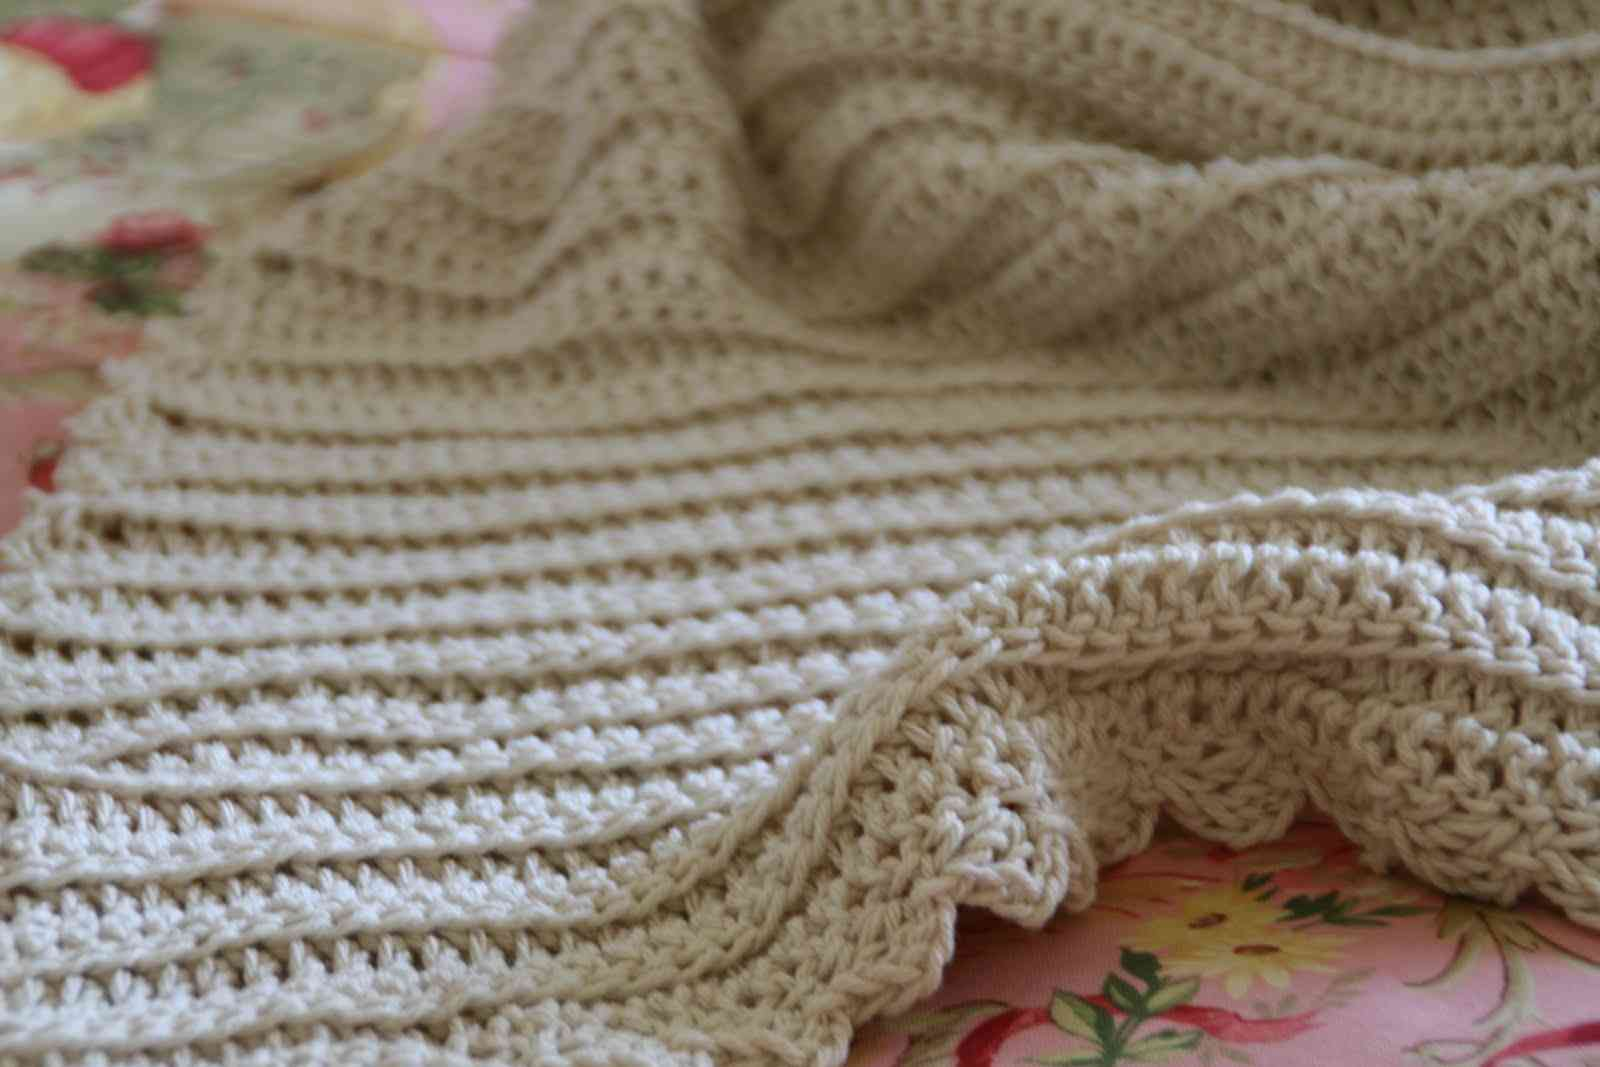 ... blanket 400x266 15 Most Popular Free Crochet Baby Blanket Patterns